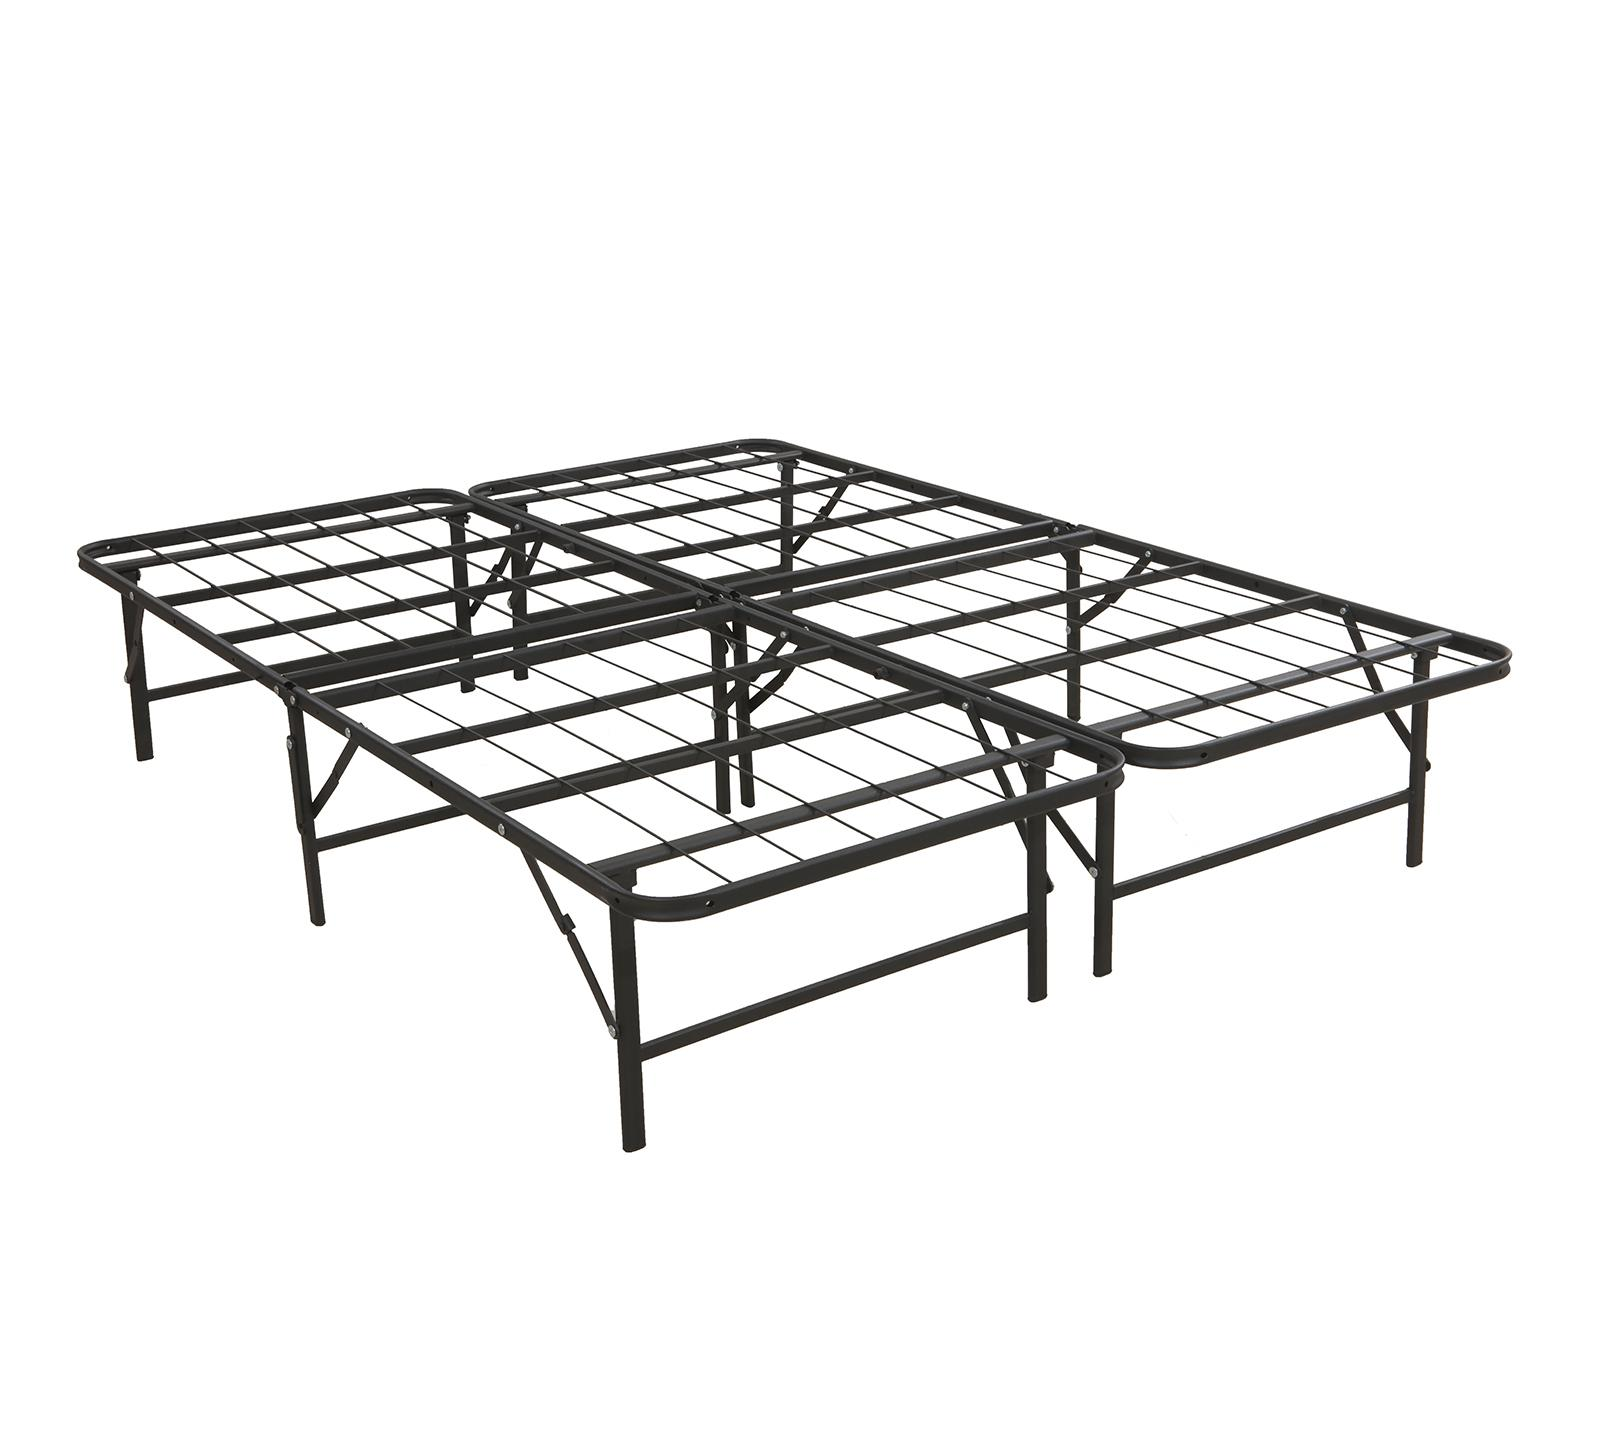 deluxe raised metal platform frame easy assembly